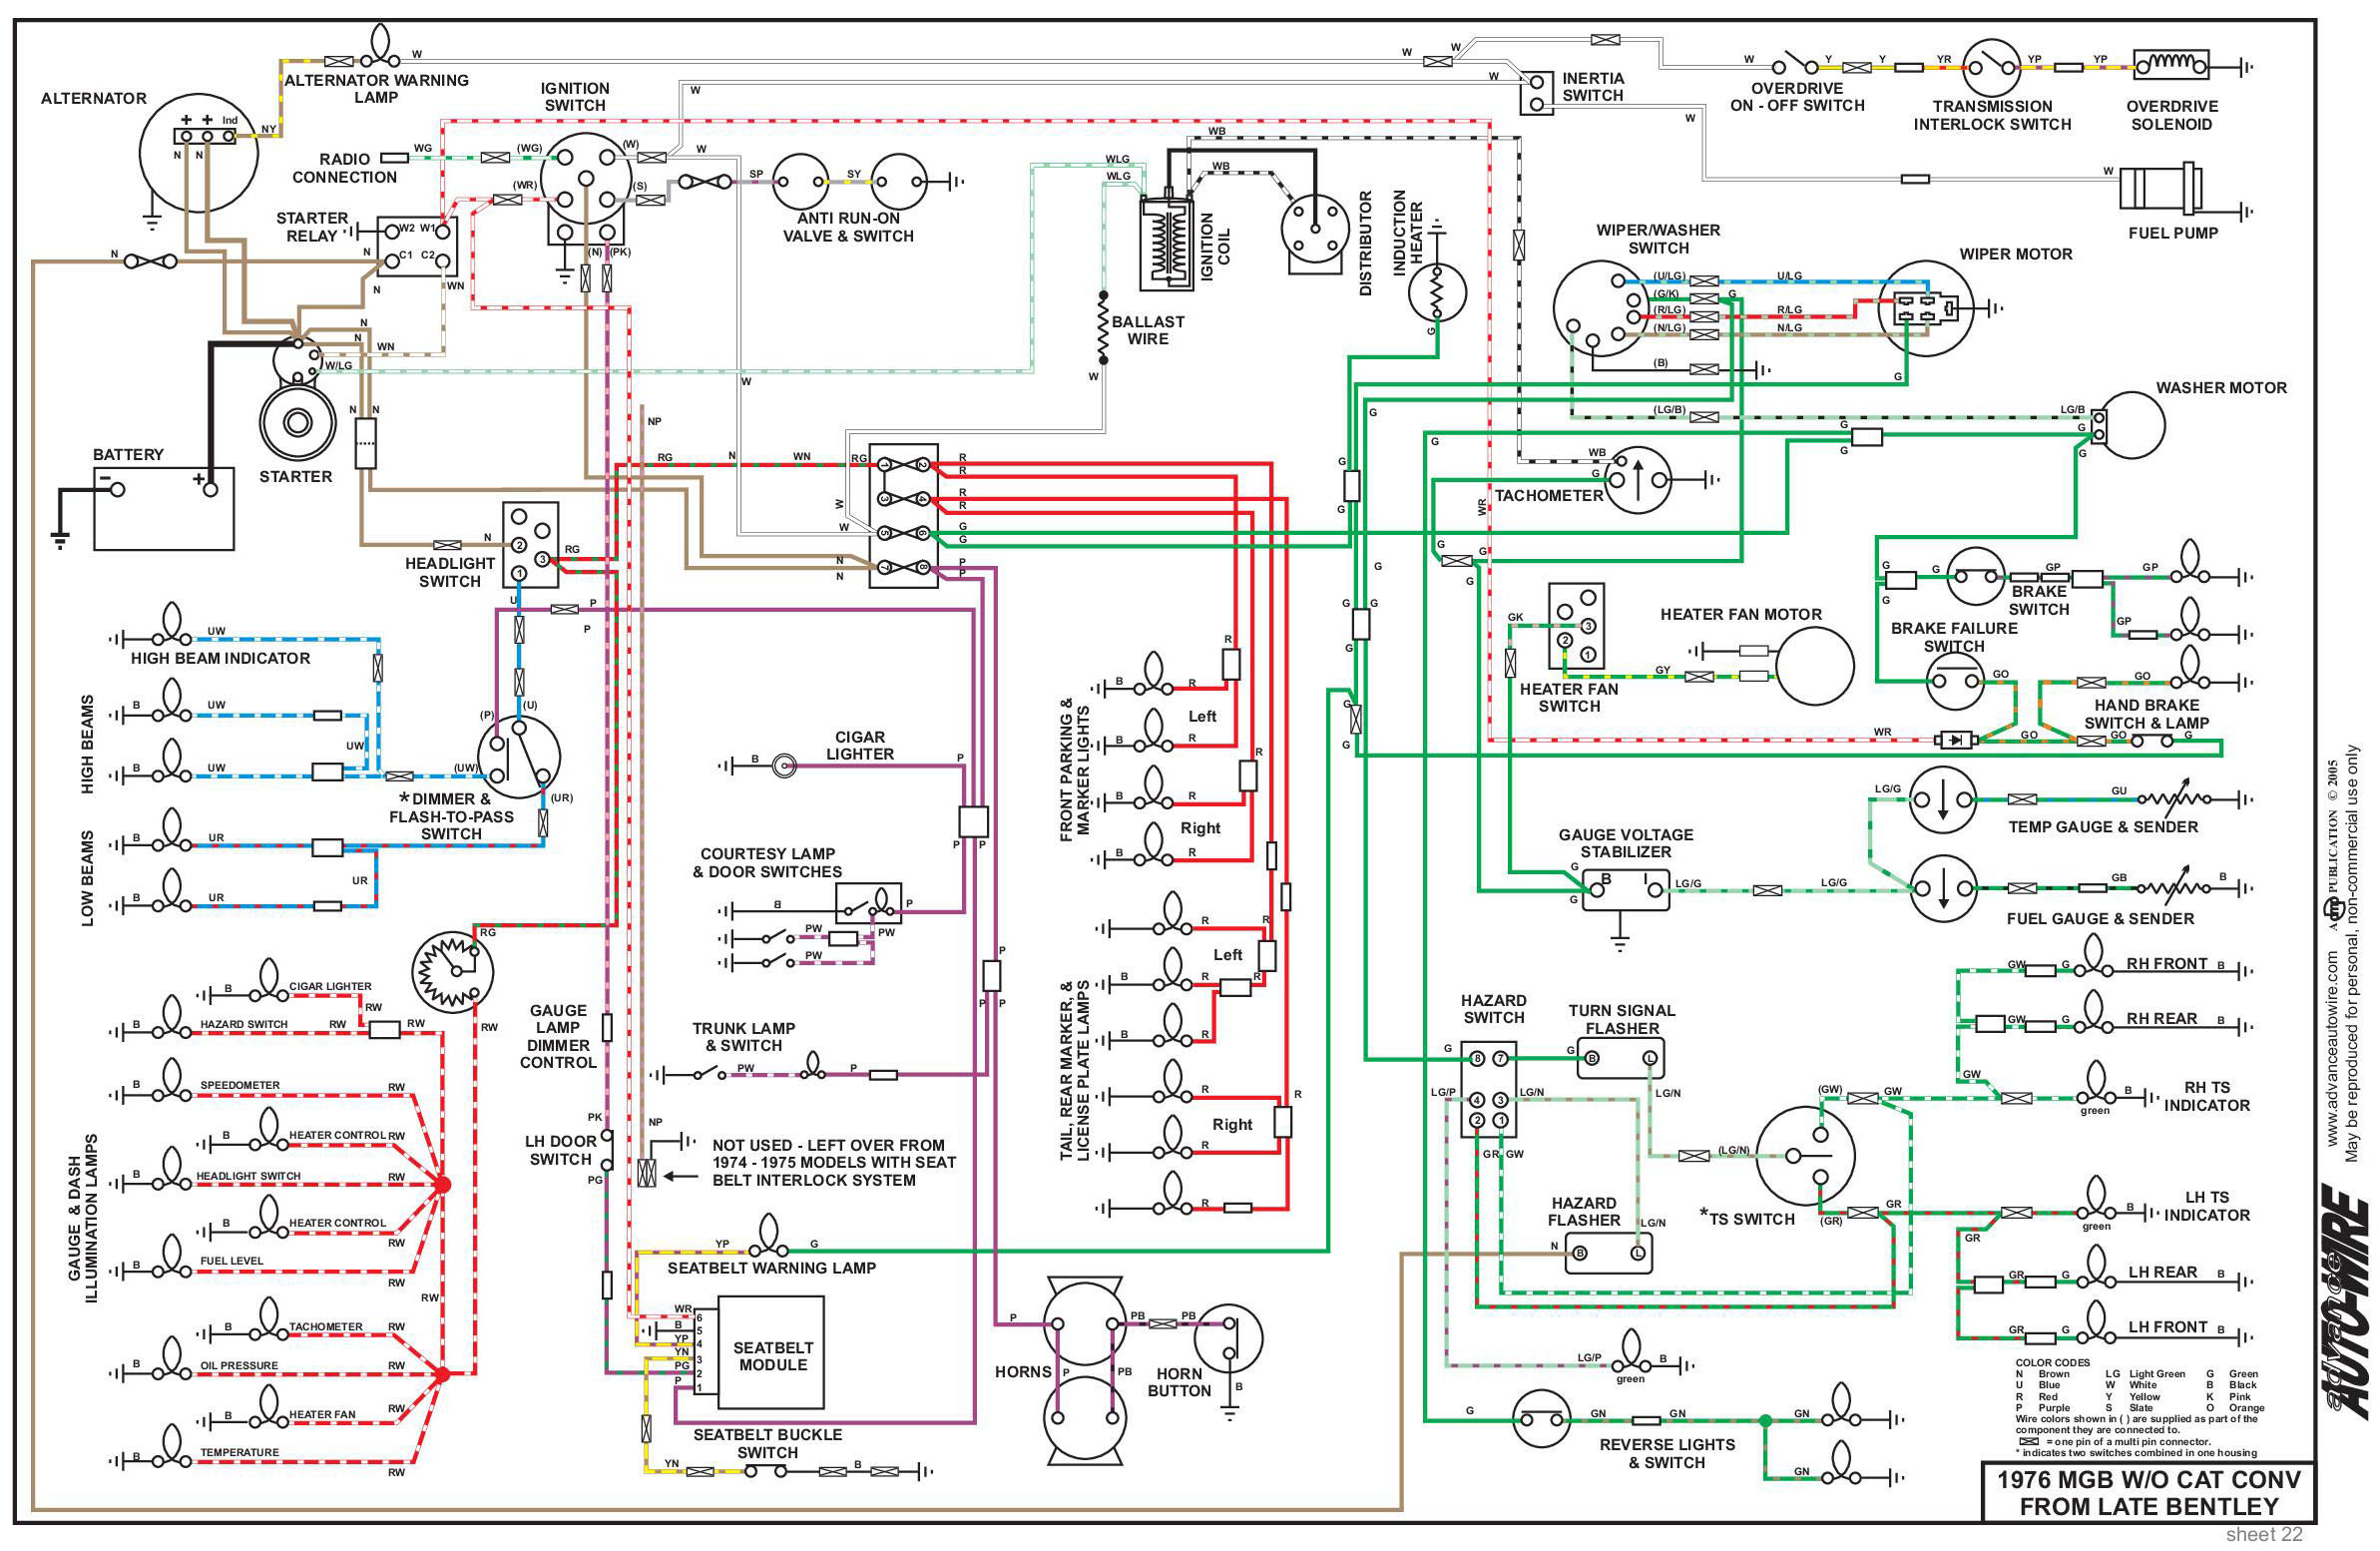 Electrical System on turn signal flasher diagram, flasher circuit diagram, flasher relay,